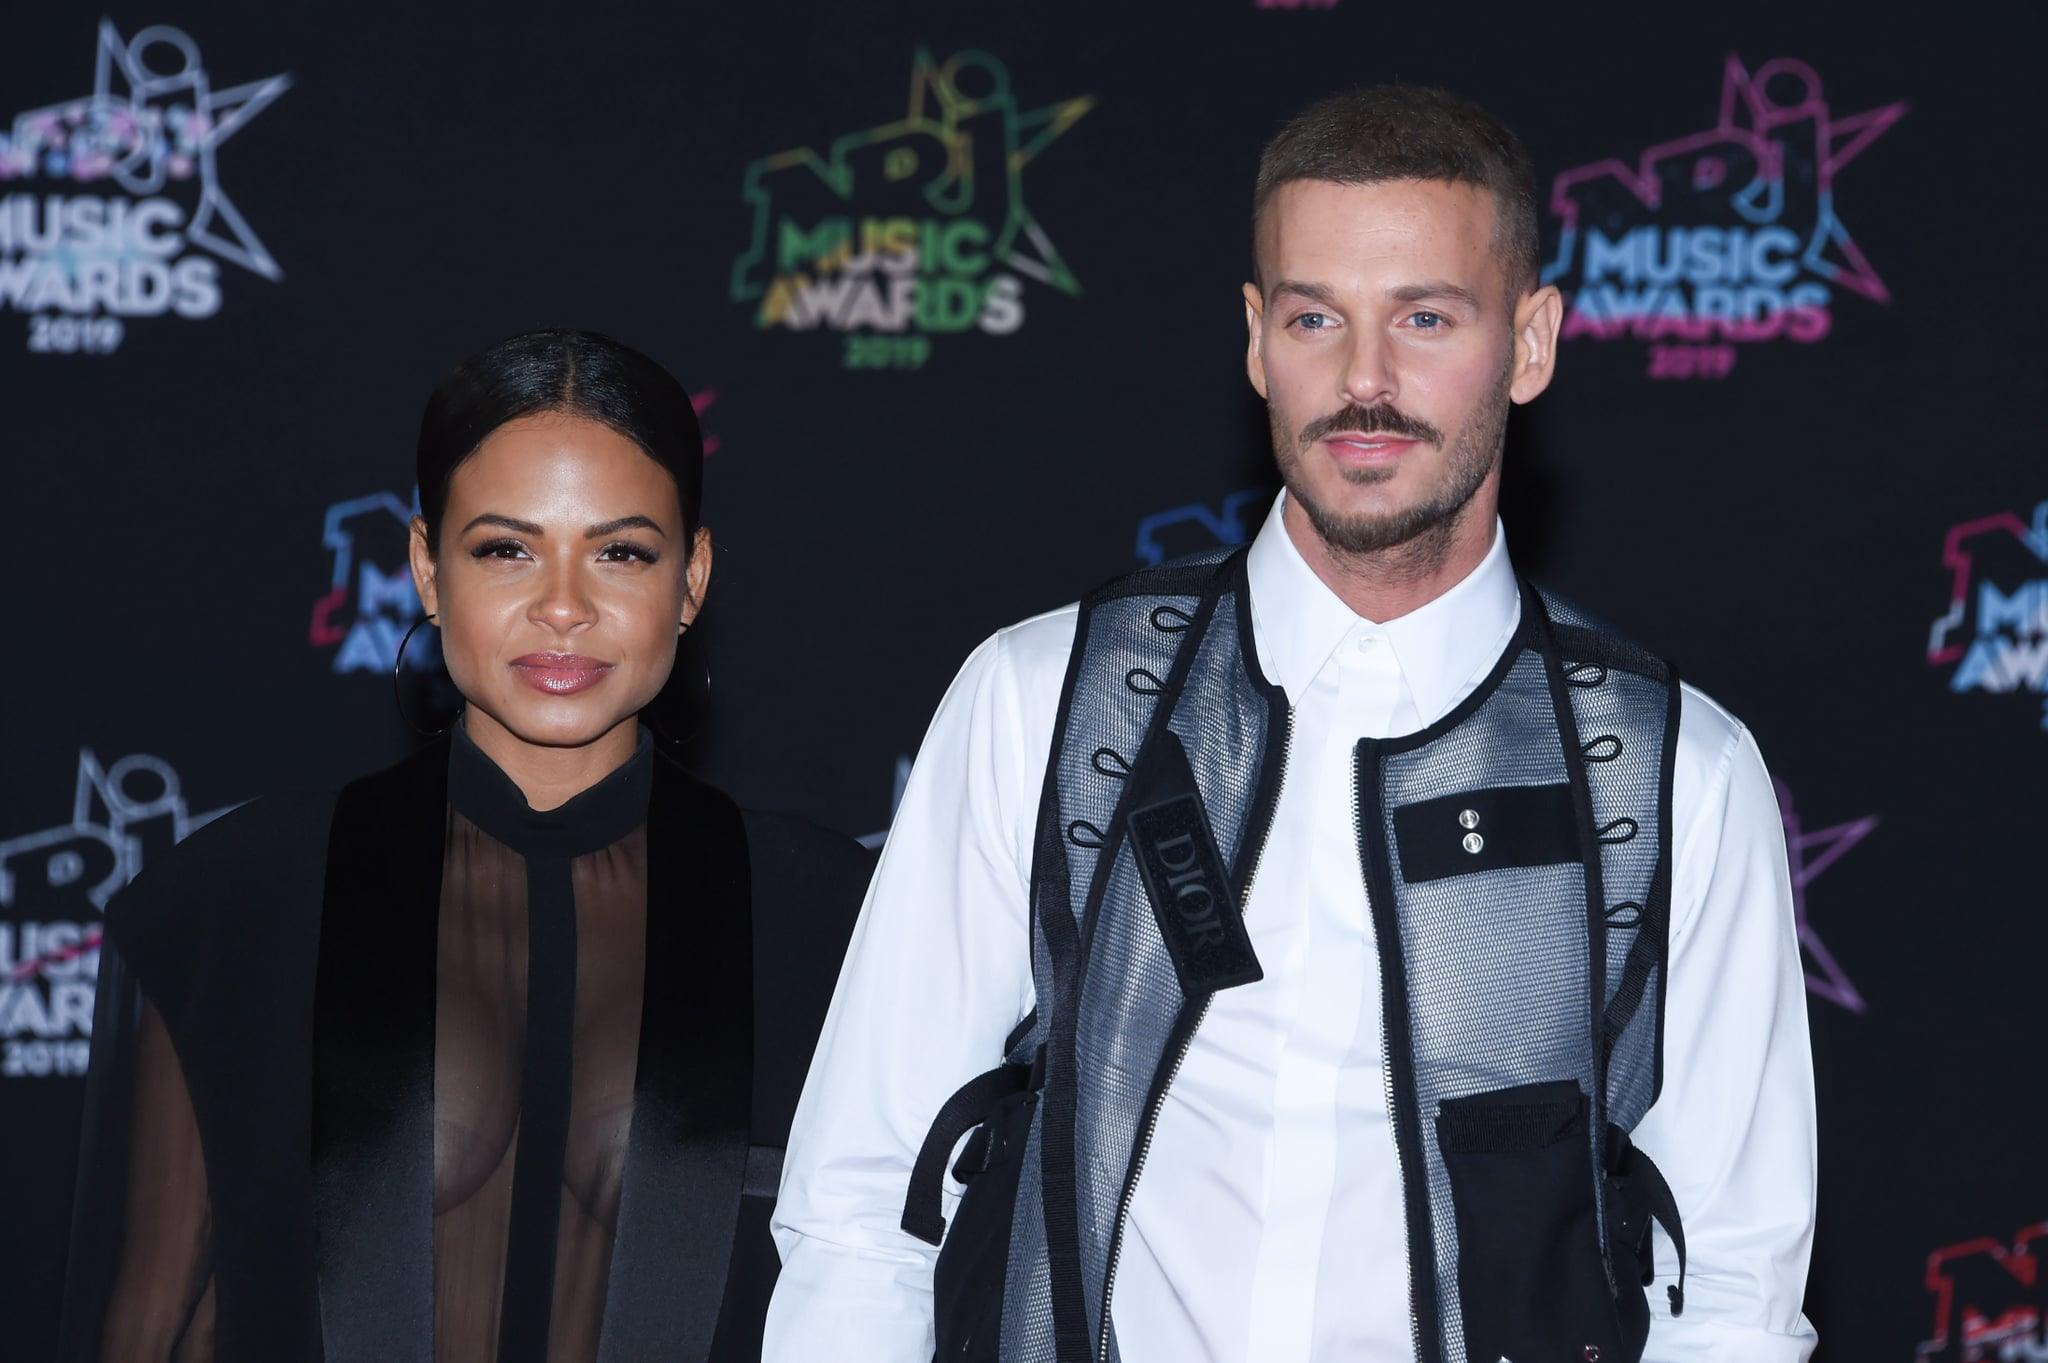 CANNES, FRANCE - NOVEMBER 09: : Christina Milian and Matt Pokora attend the 21st NRJ Music Awards At Palais des Festivals on November 09, 2019 in Cannes, France. (Photo by Stephane Cardinale - Corbis/Corbis via Getty Images)